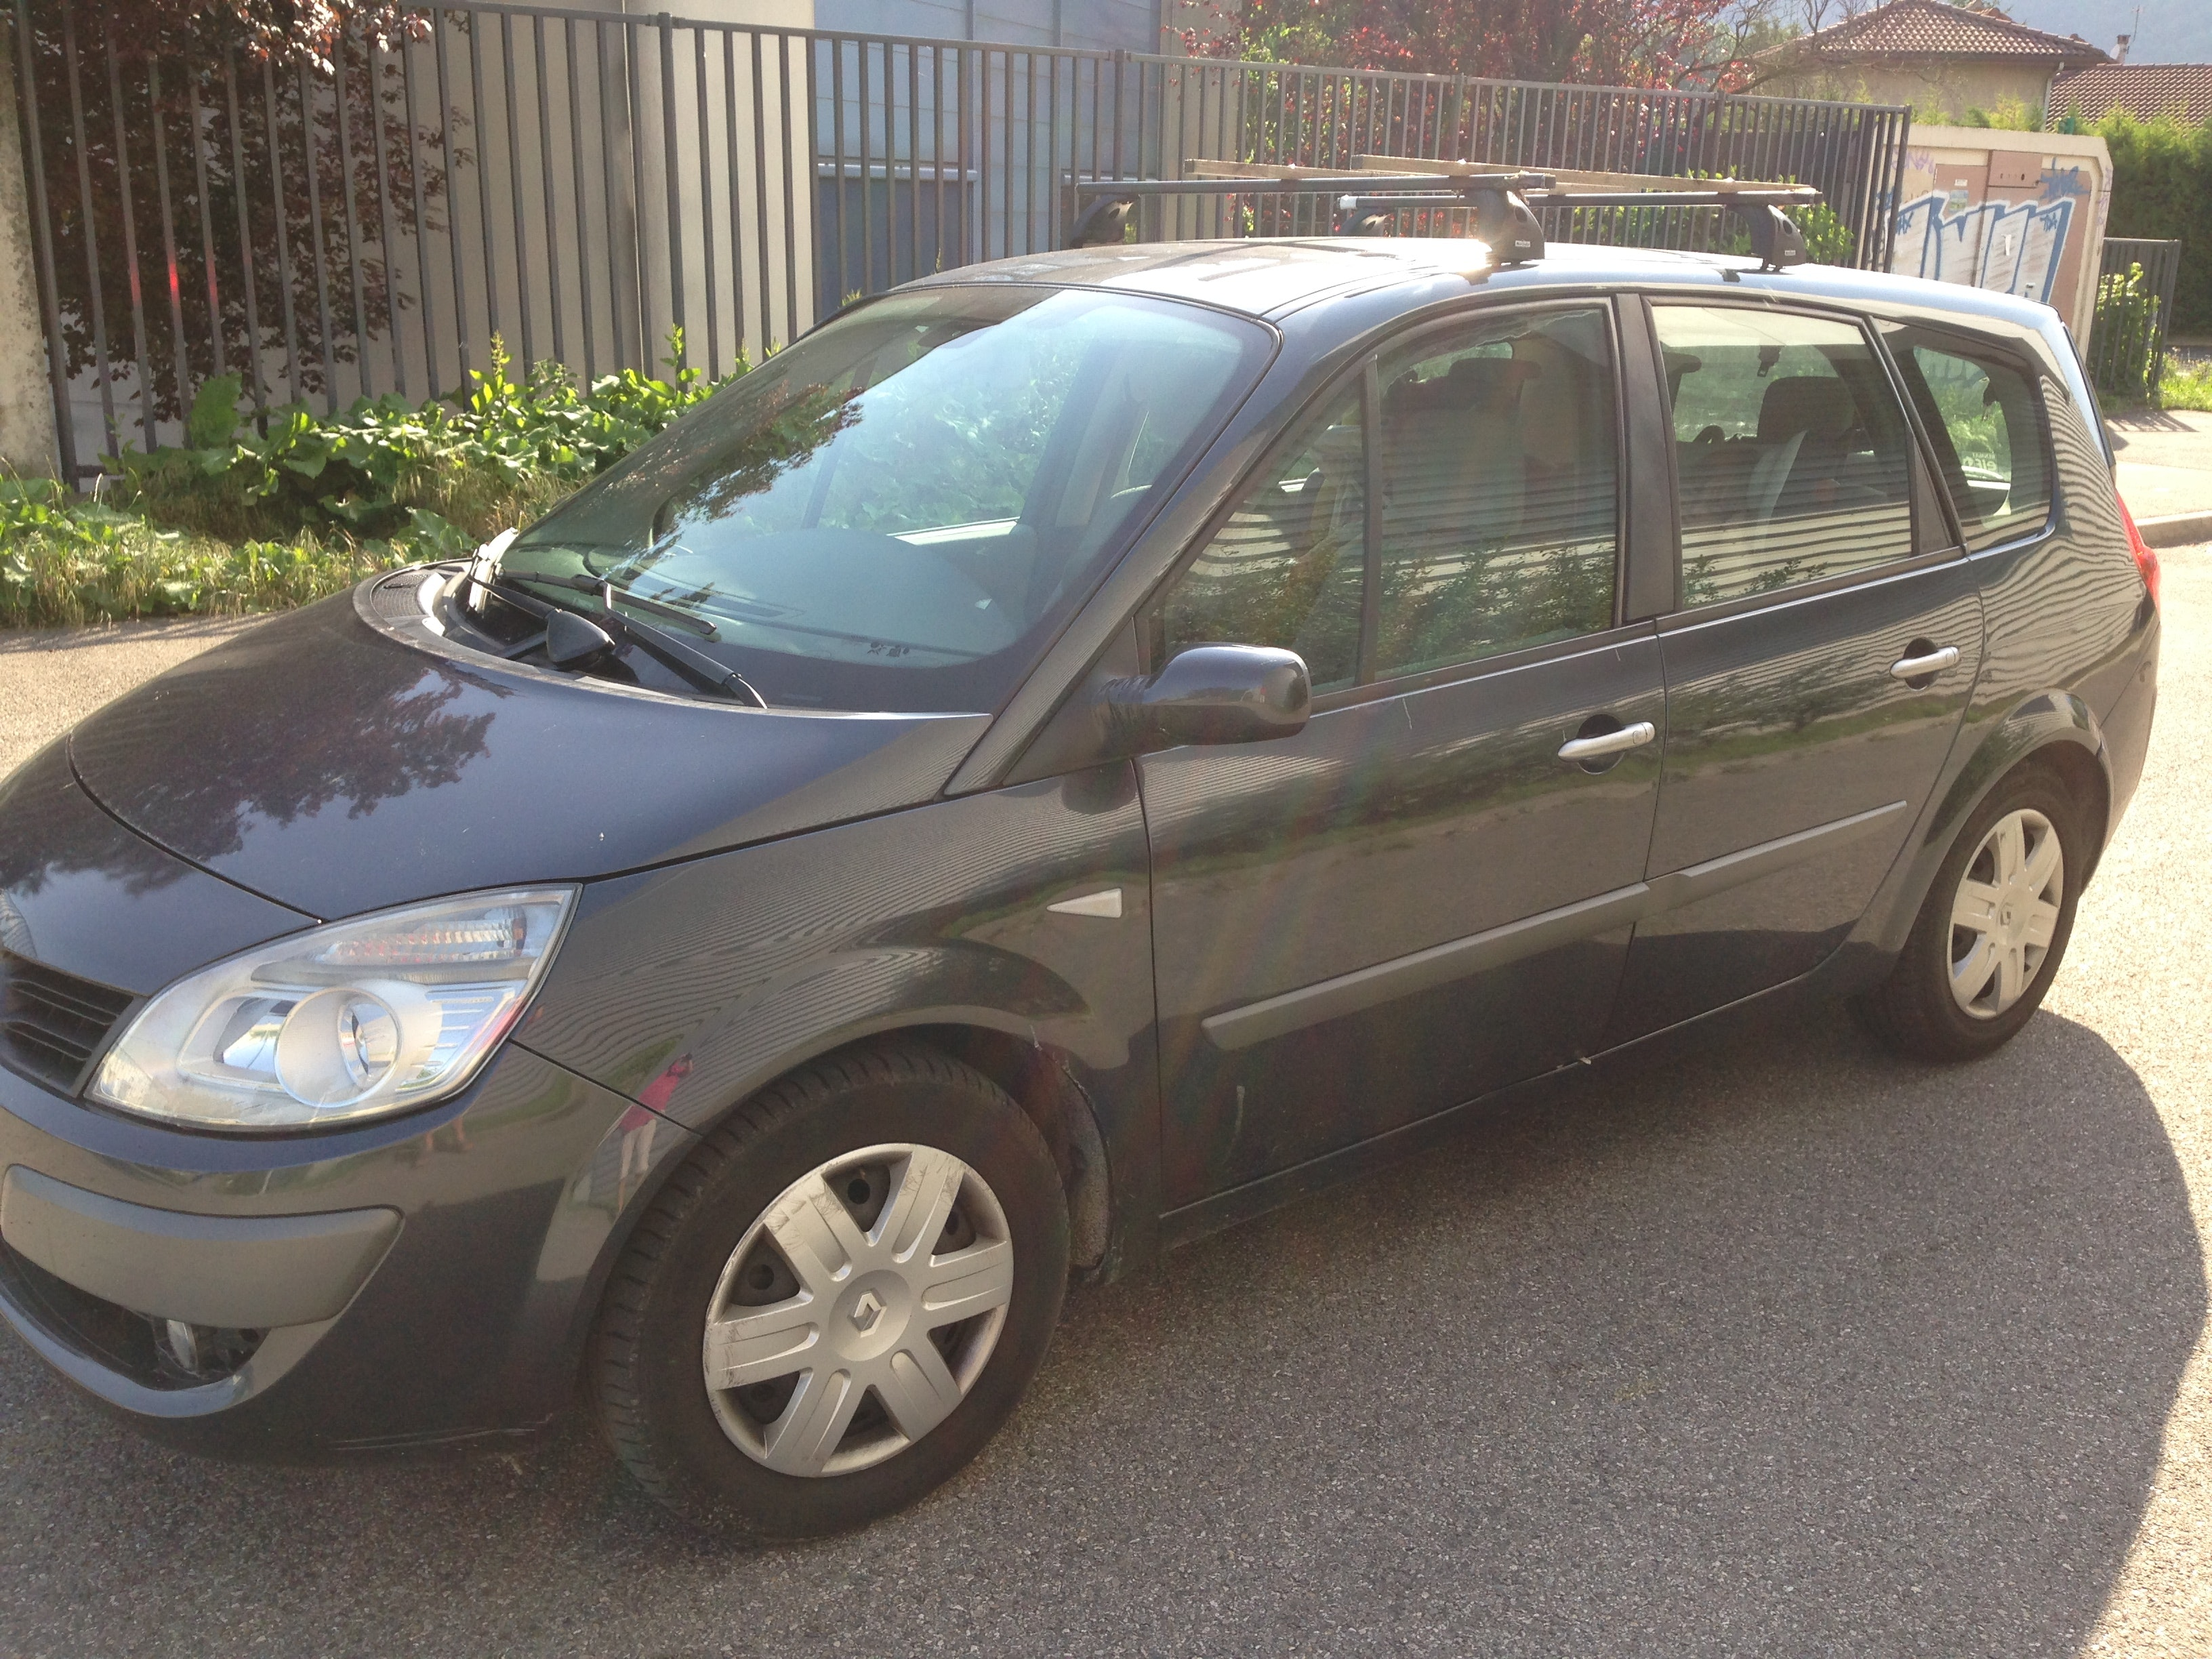 Renault GRAND SCENIC 1,5 DCI 105CH, 2009, Diesel, 7 places